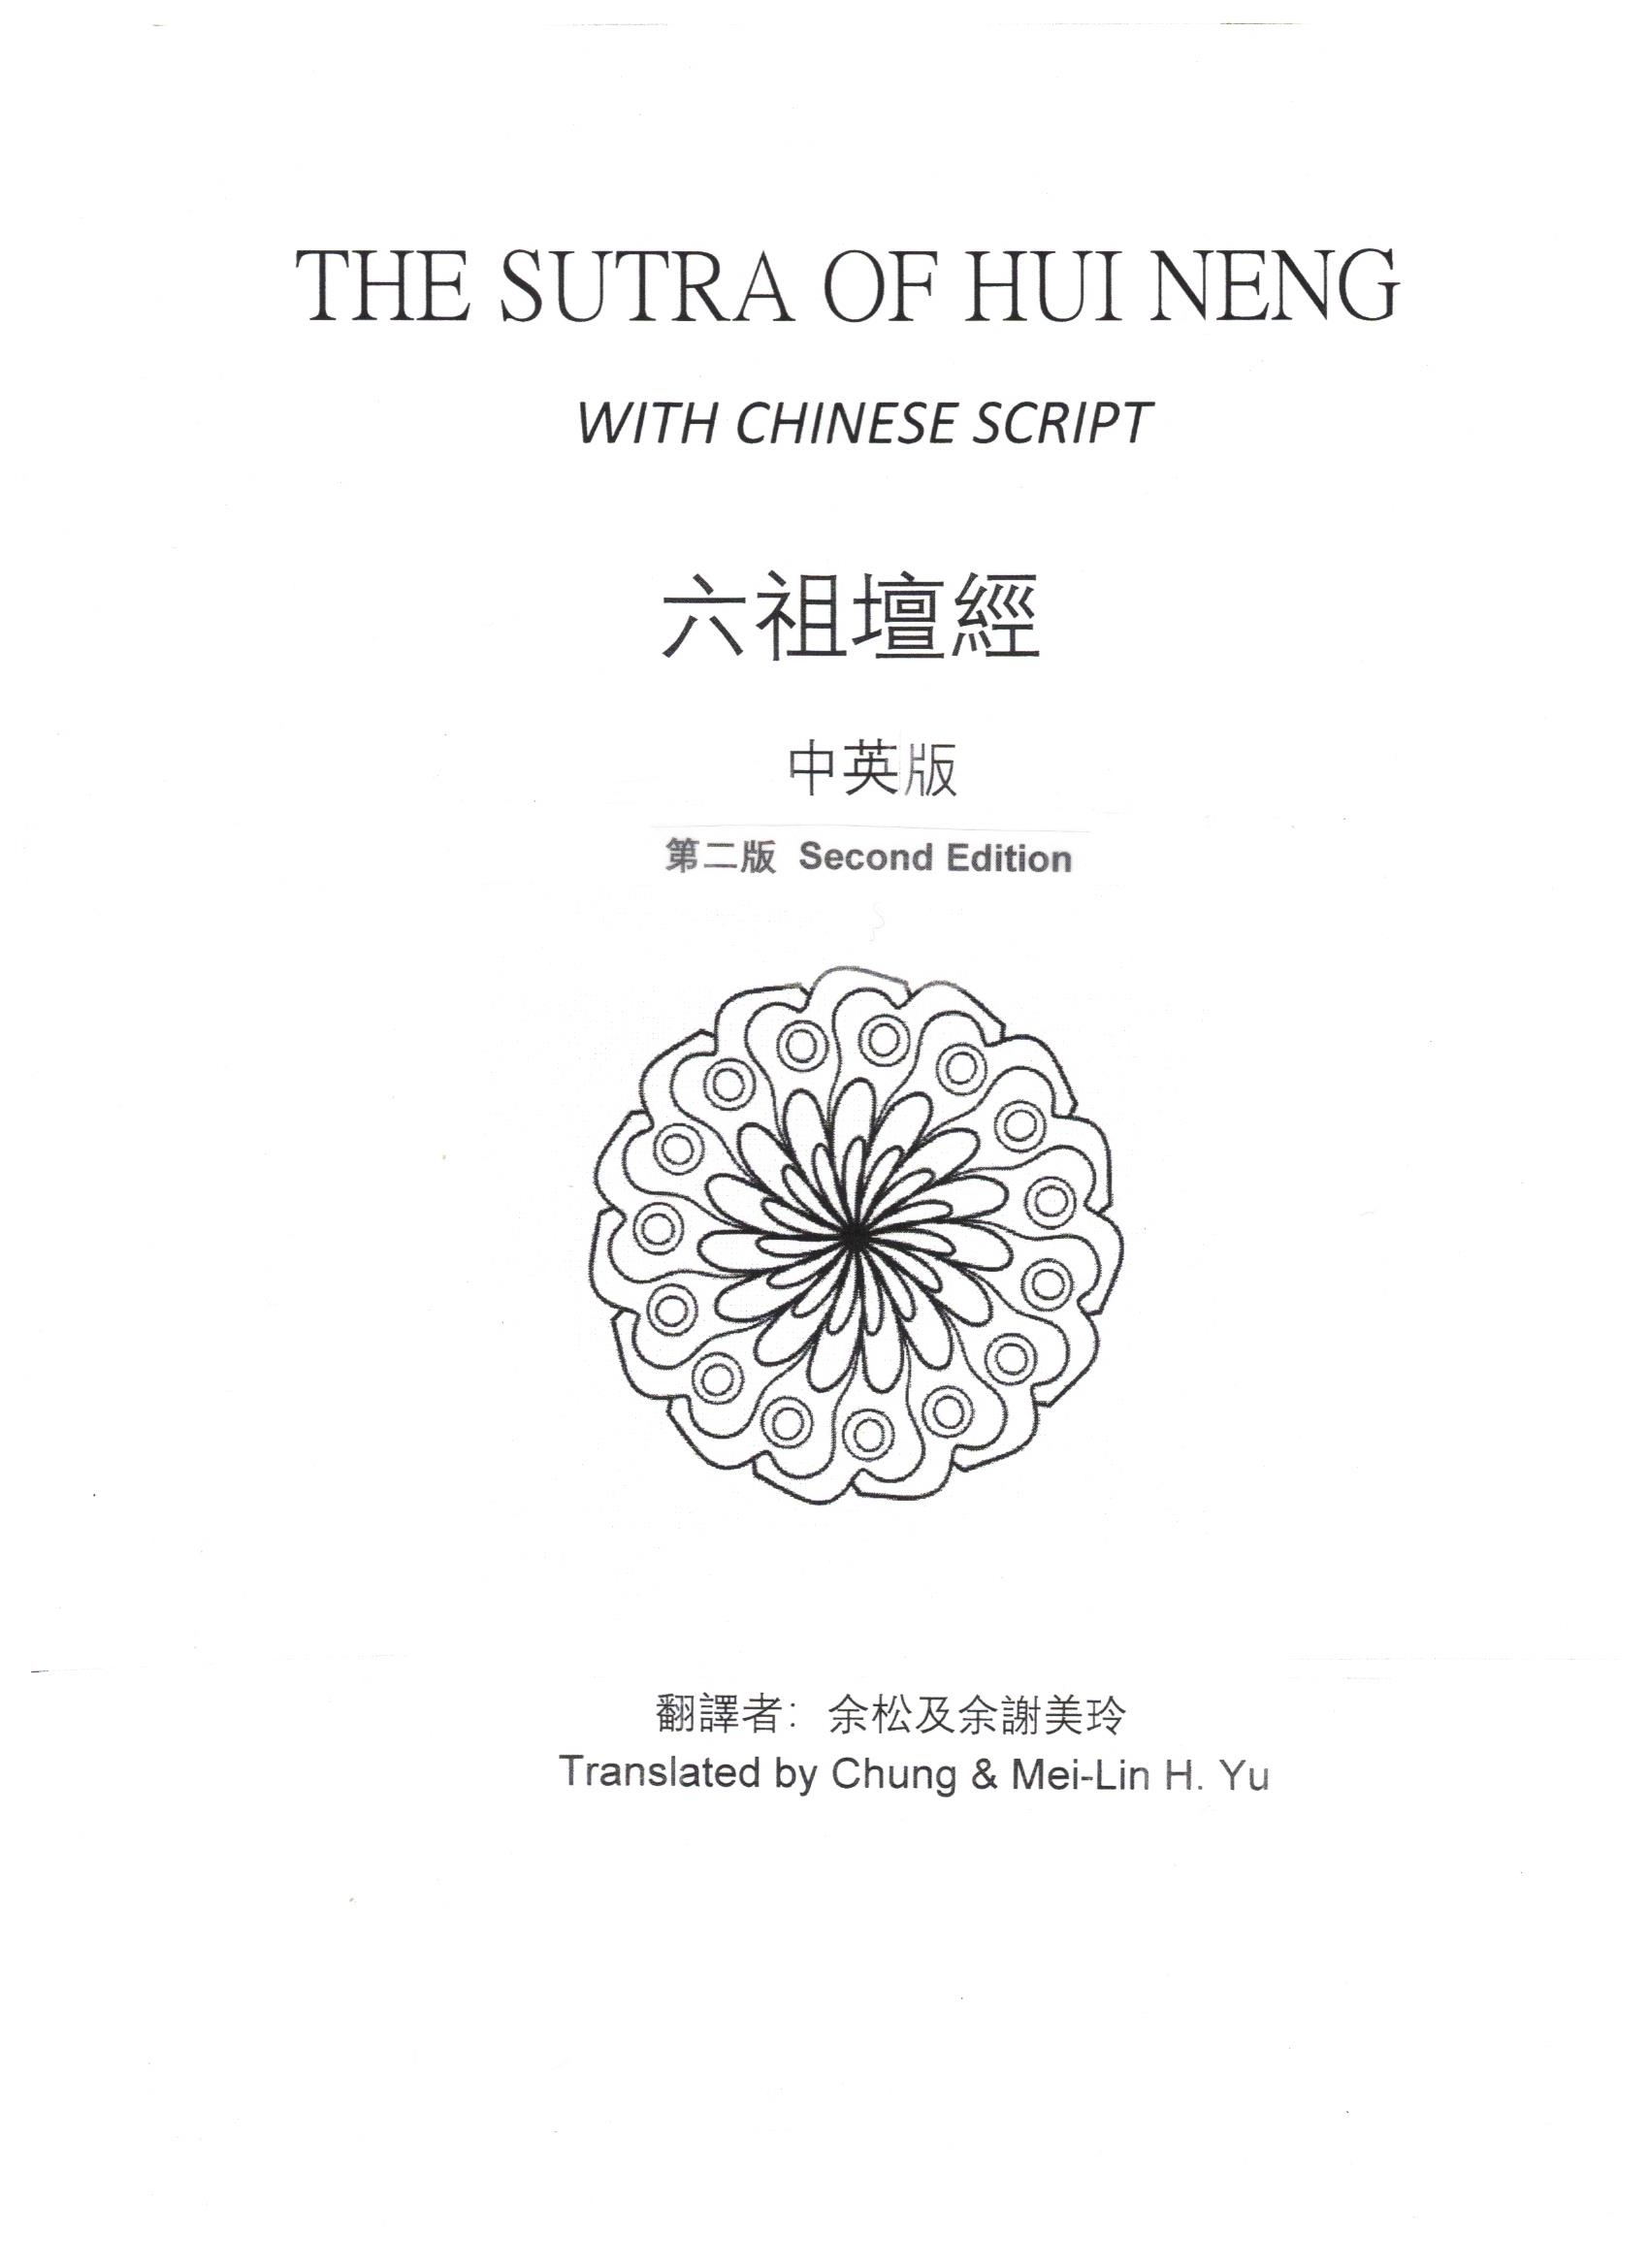 The Sutra of Hui Neng with Chinese Script